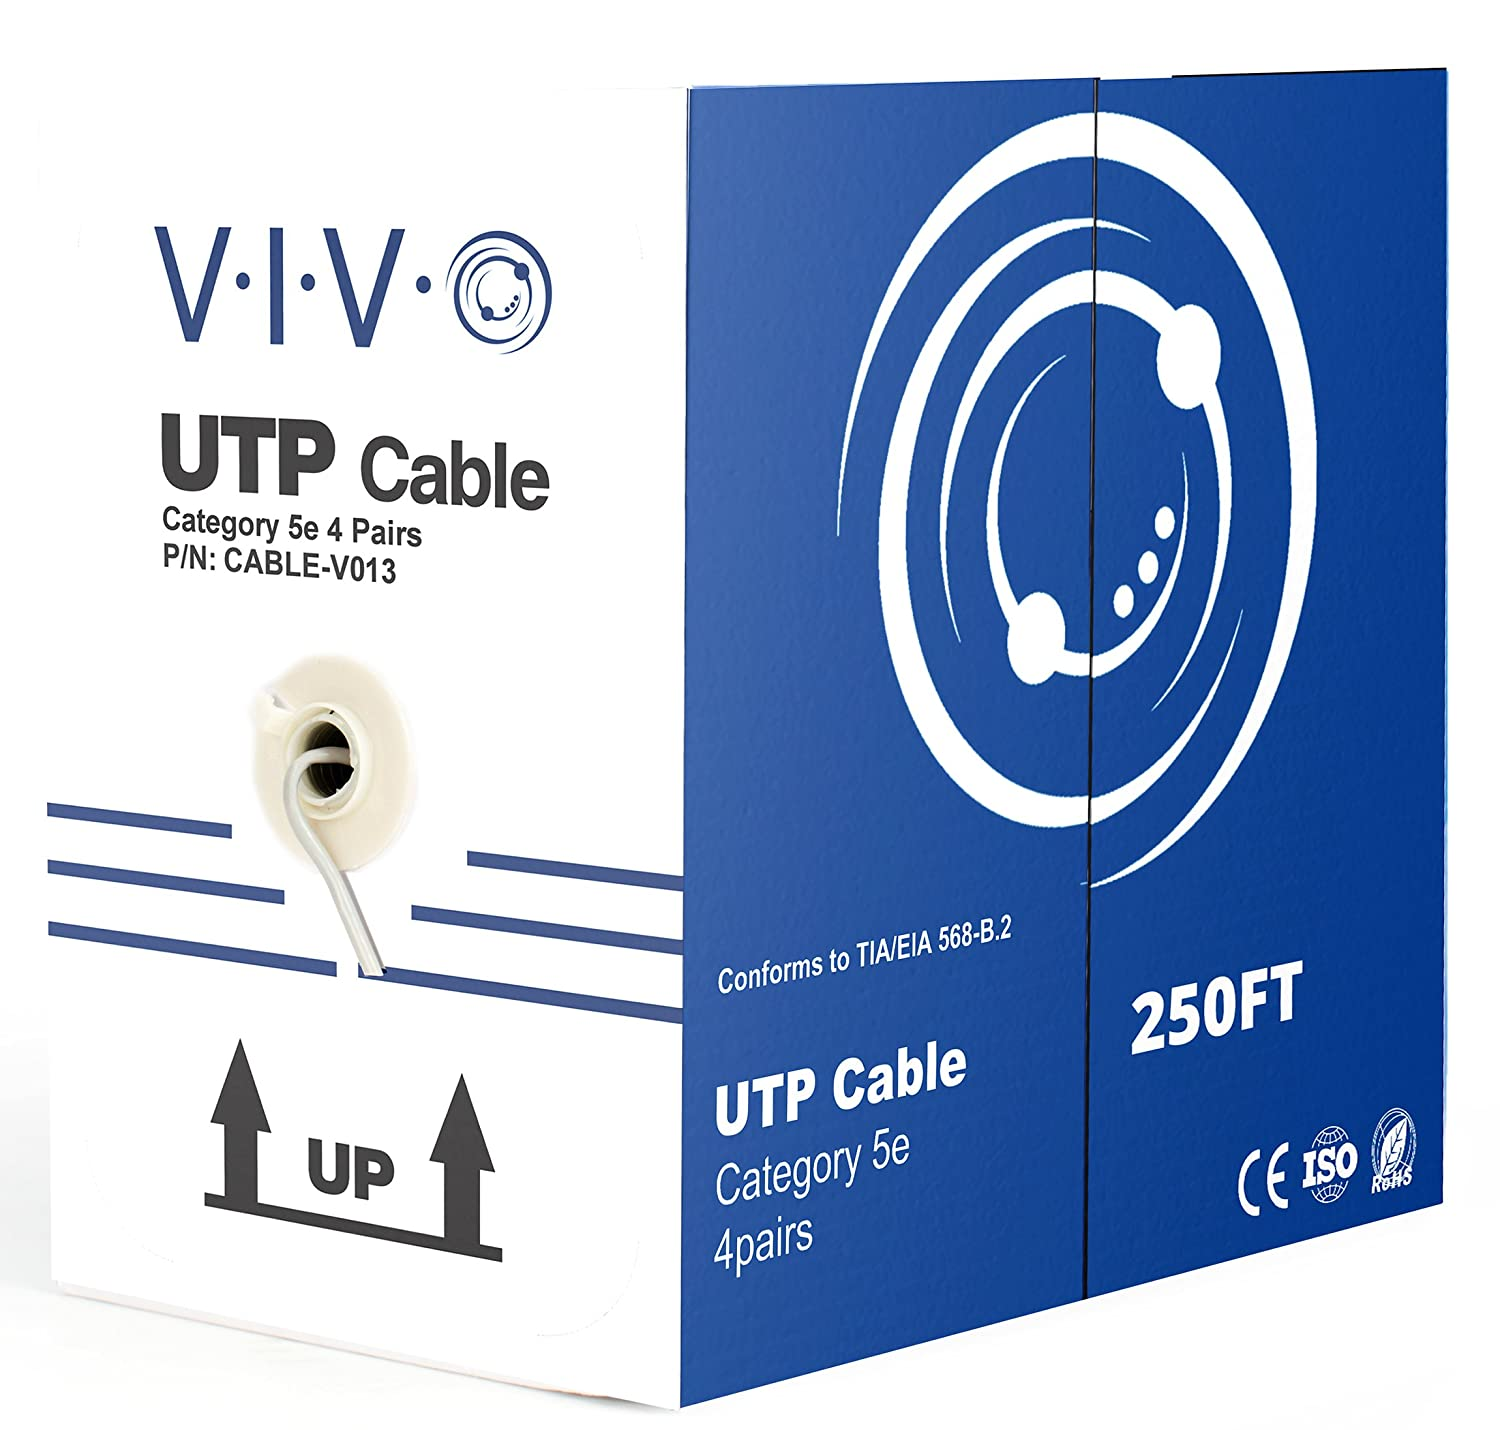 Cat5 Wiring On Tia Eia 568a 568b Standards For Cat5e Cable